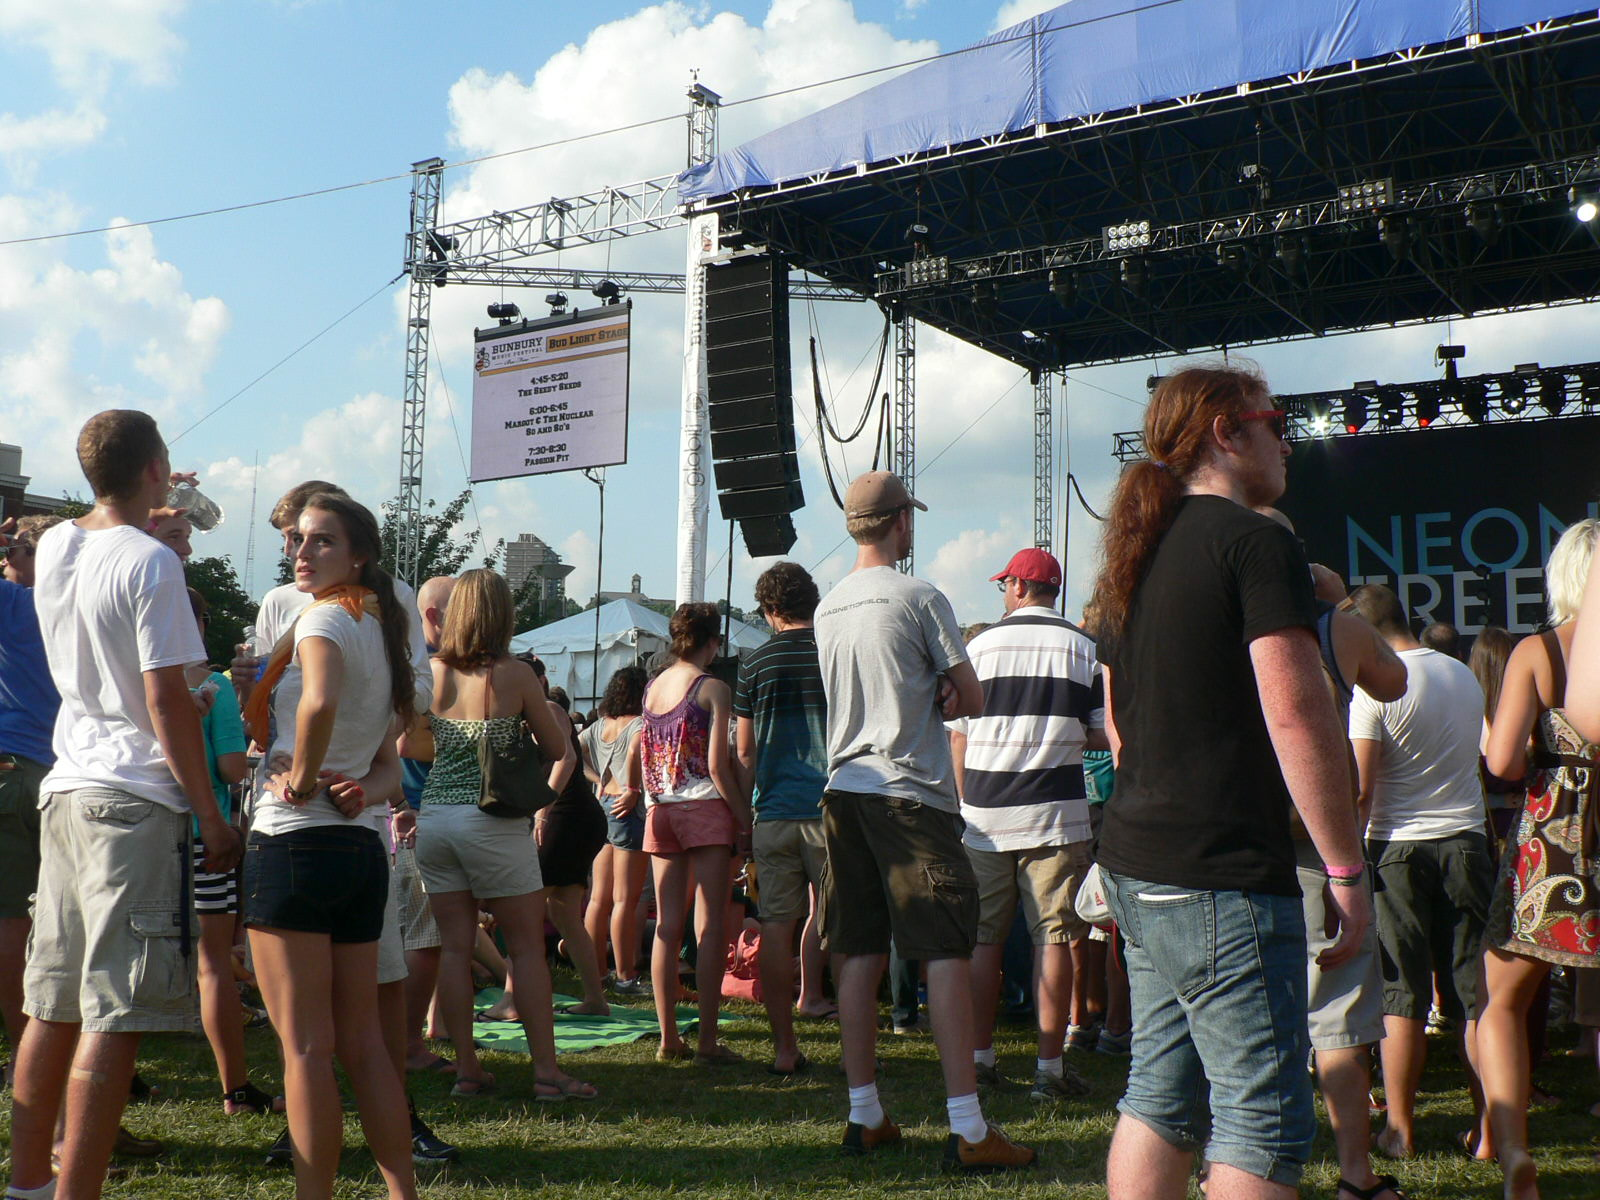 Neon Trees prepares to take the stage at the 2012 Bunbury Music Festival in Cincinnati